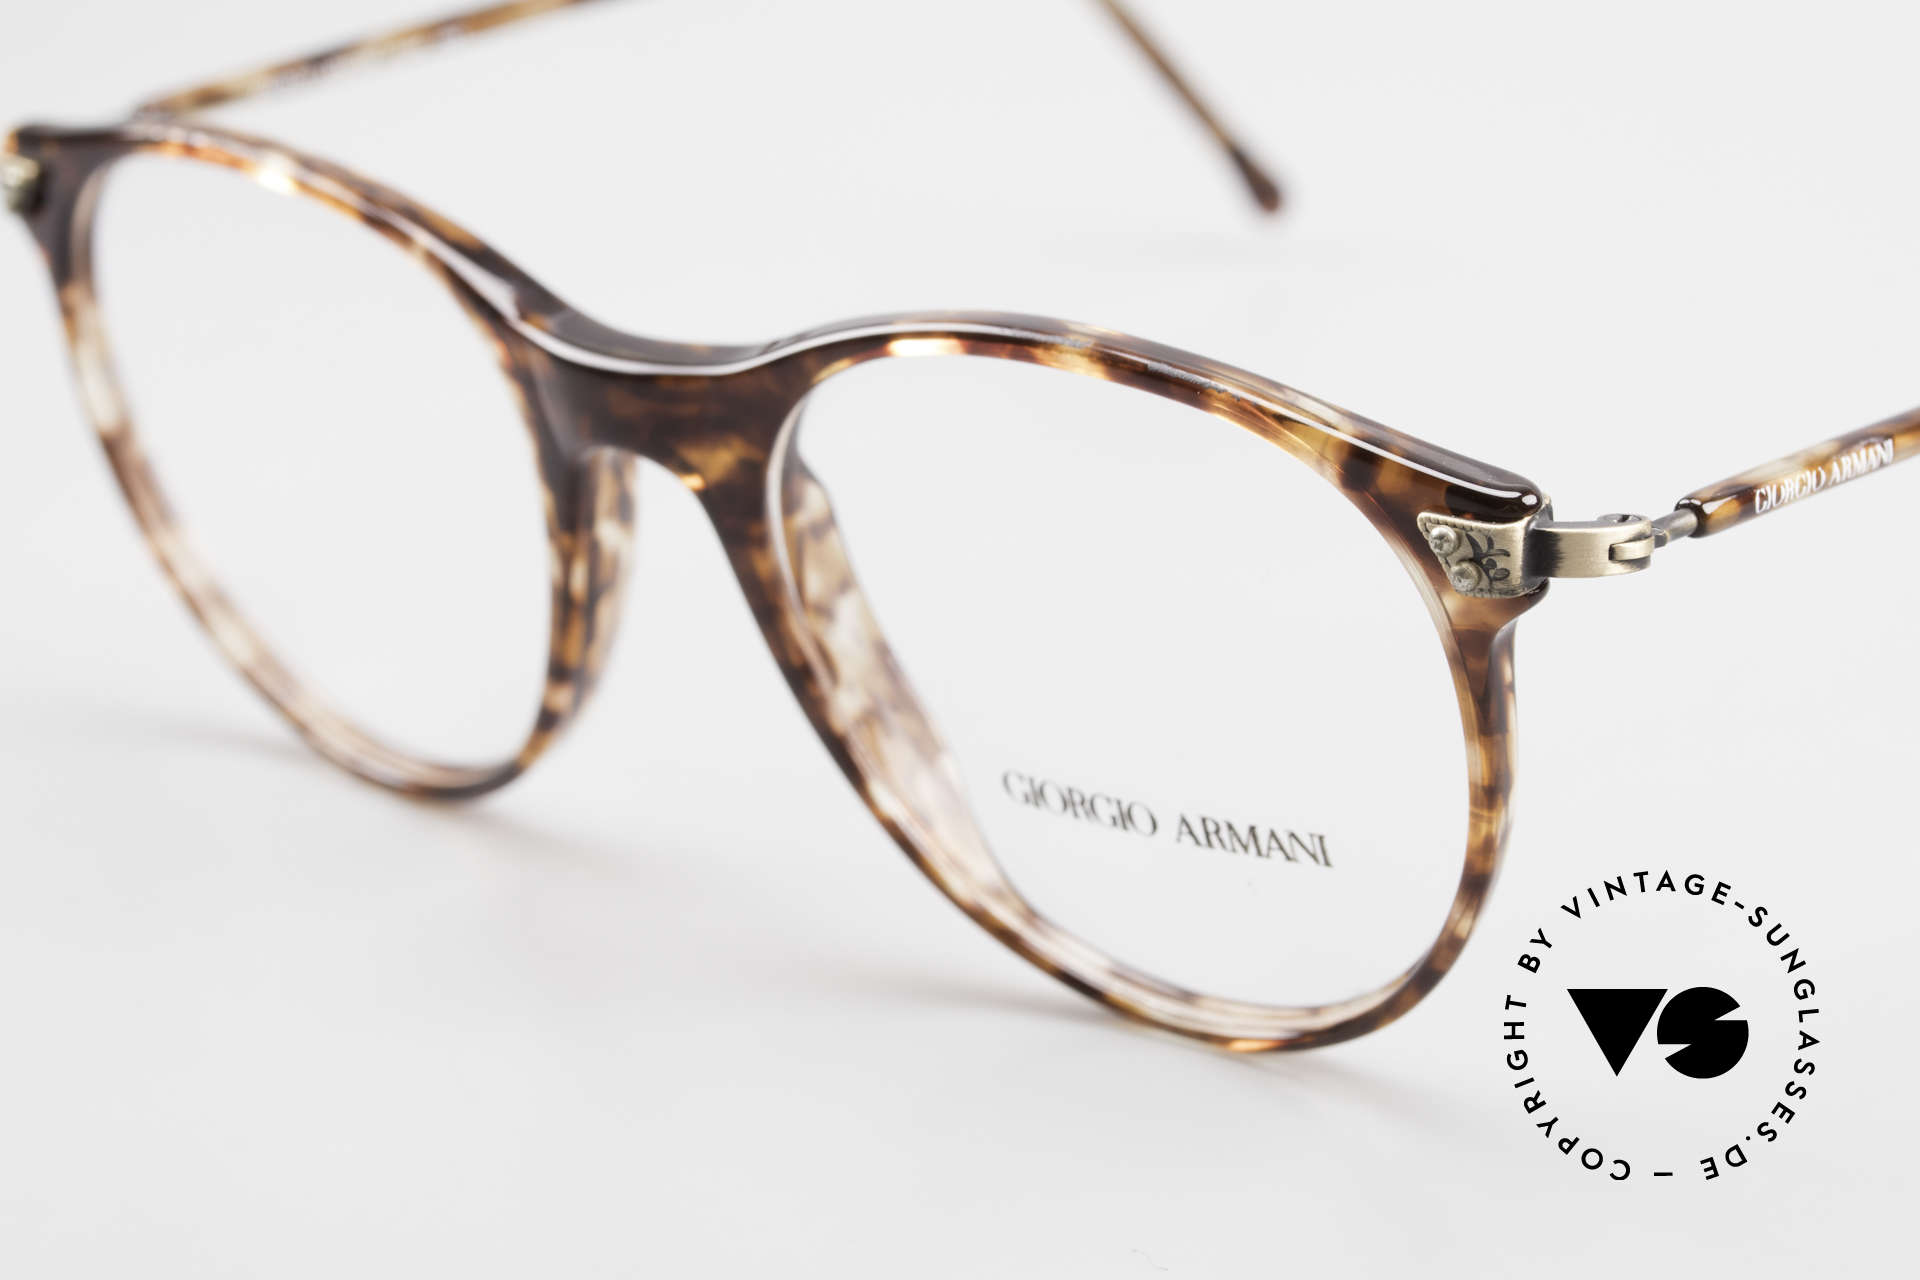 Giorgio Armani 330 True Vintage Unisex Glasses, frame is made for lenses of any kind (optical/sun), Made for Men and Women